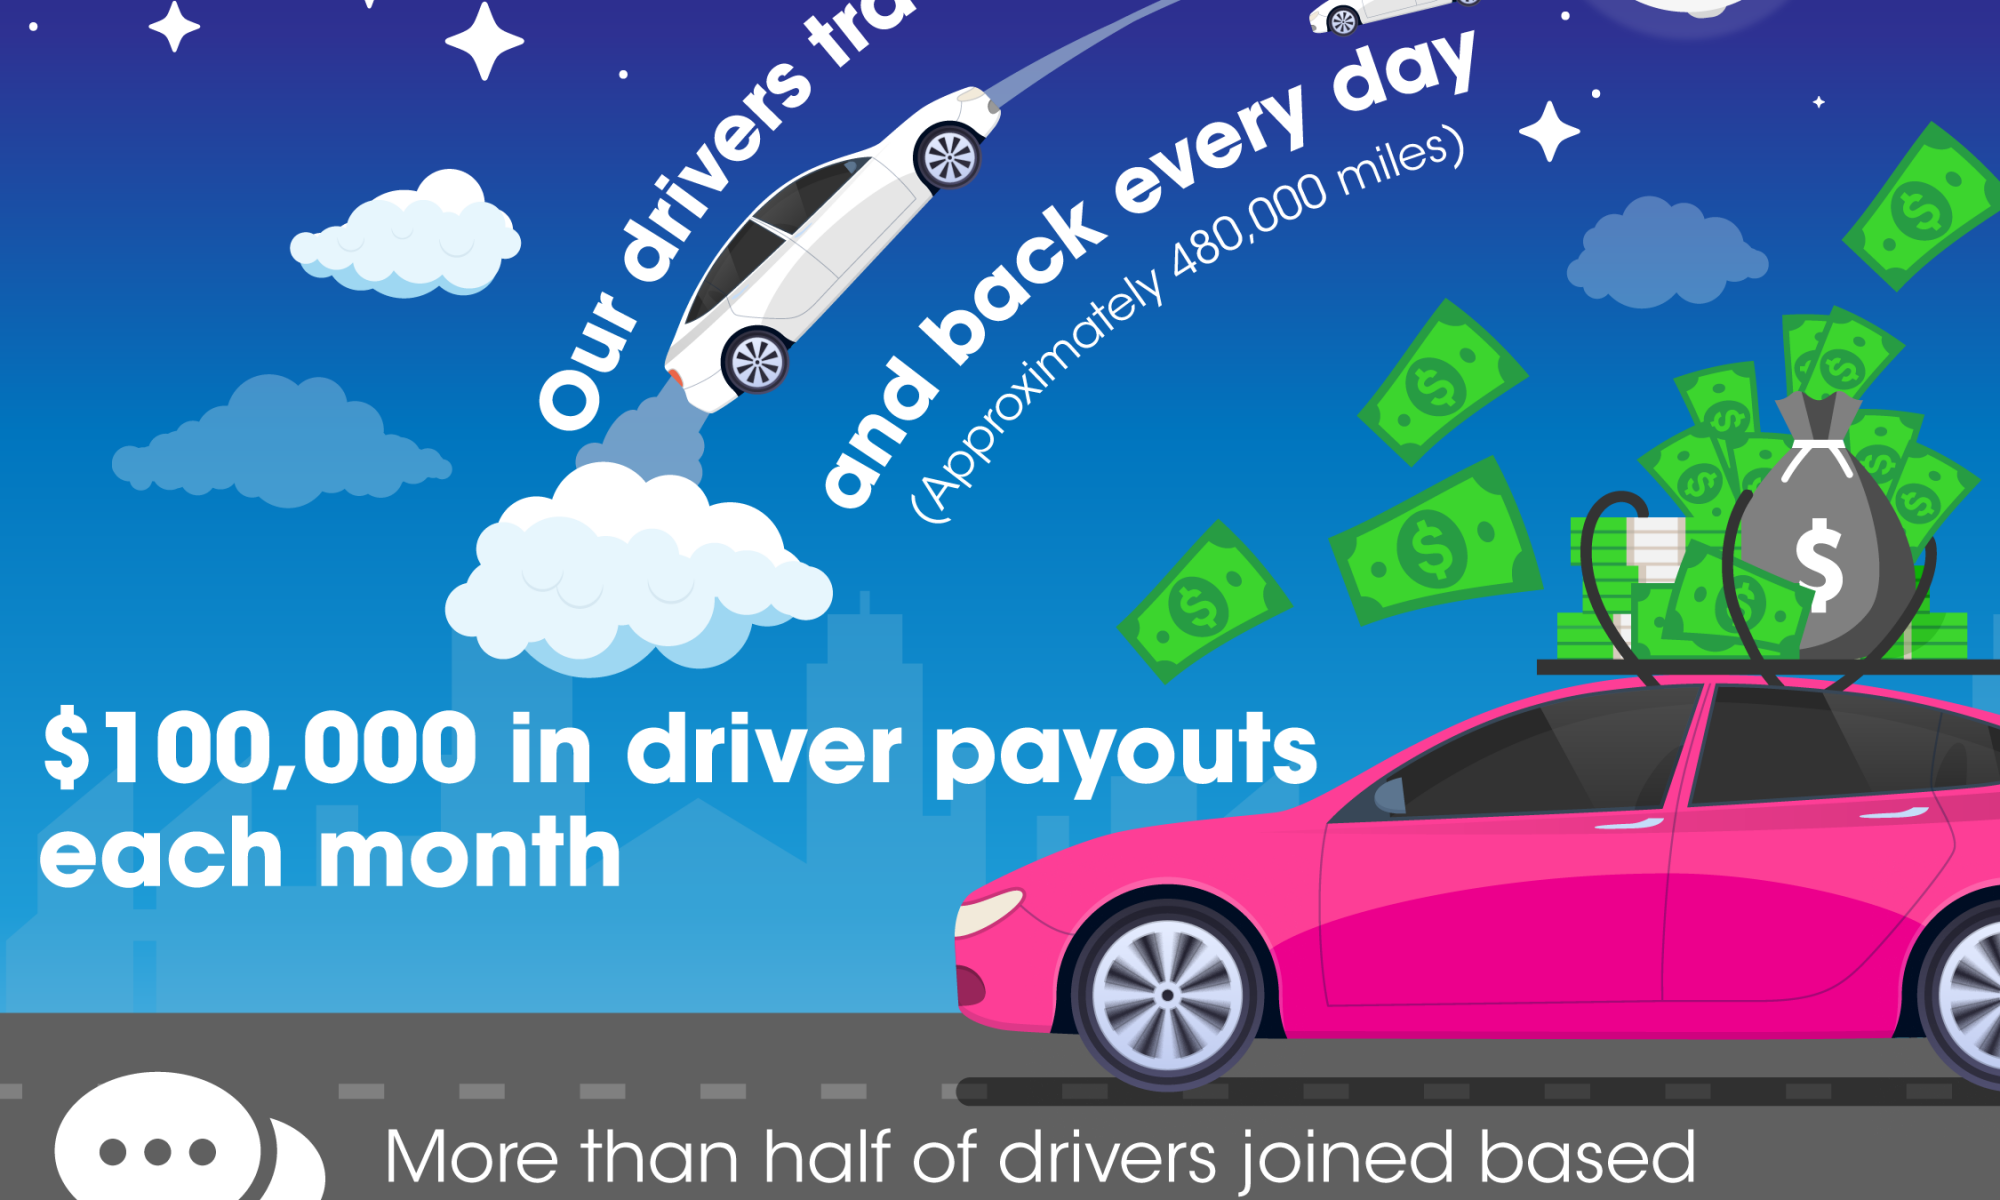 Octopus Driver Community Infographic